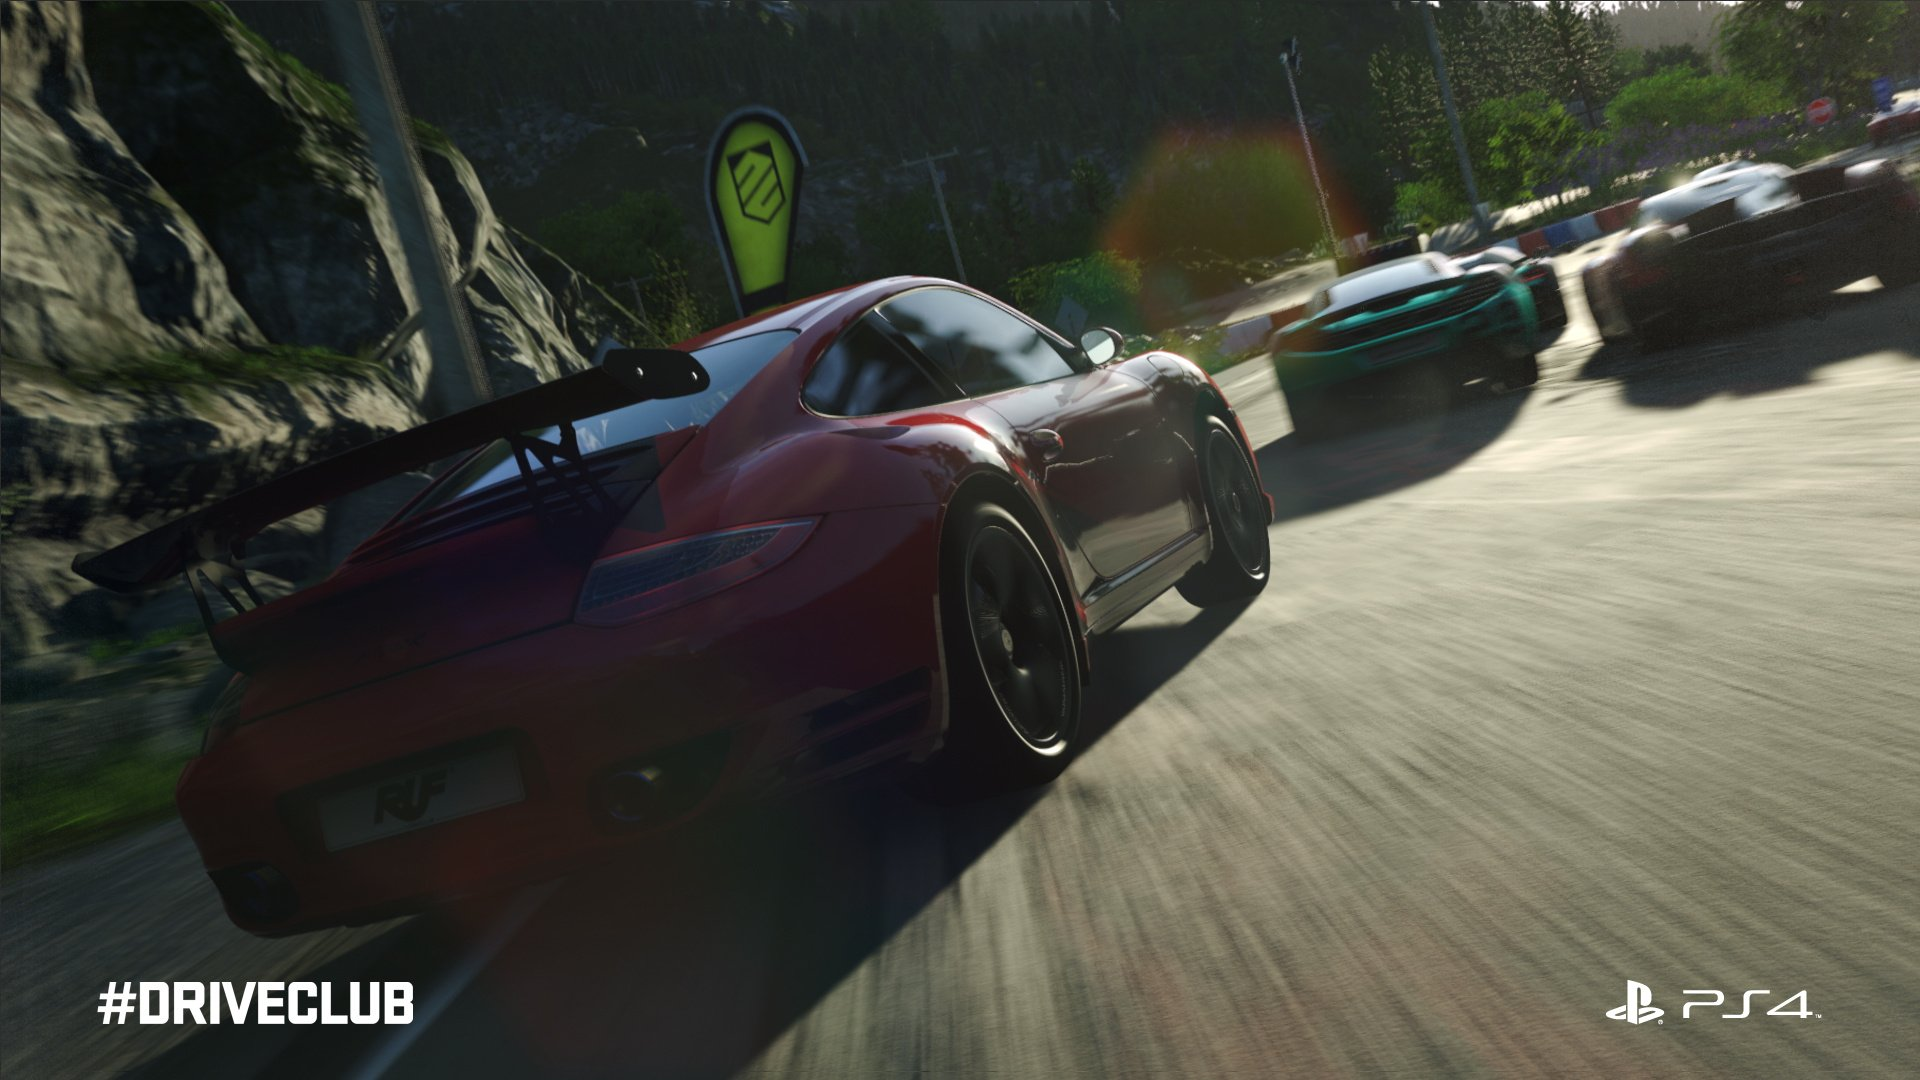 Driveclub matchmaking